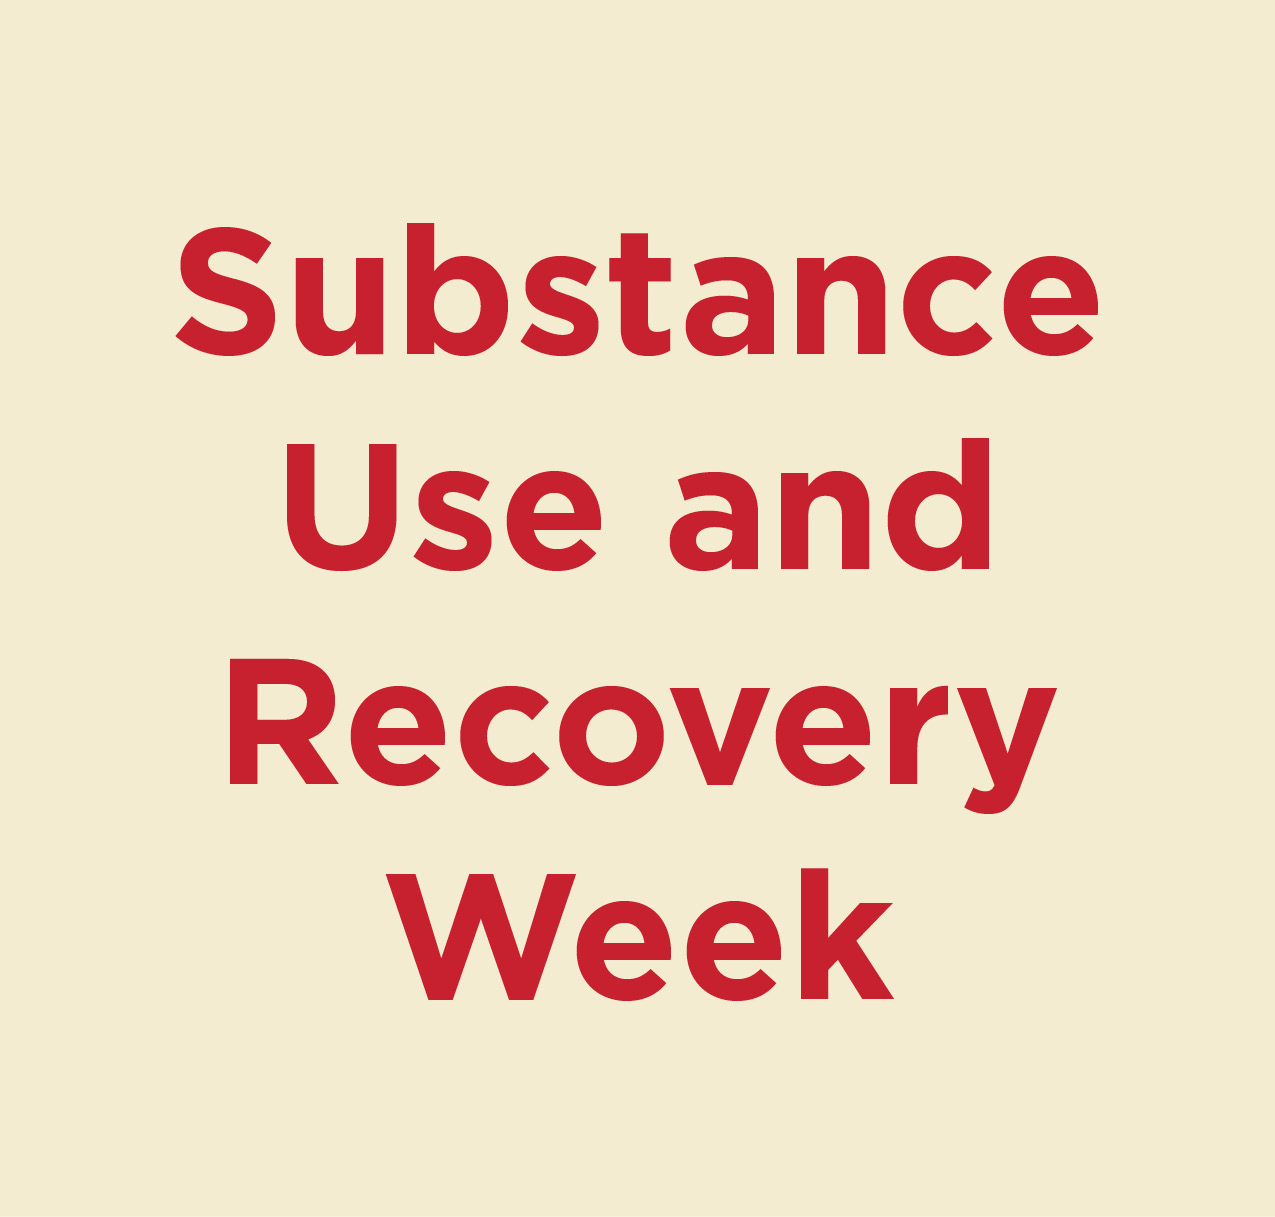 Substance Use and Recovery Week